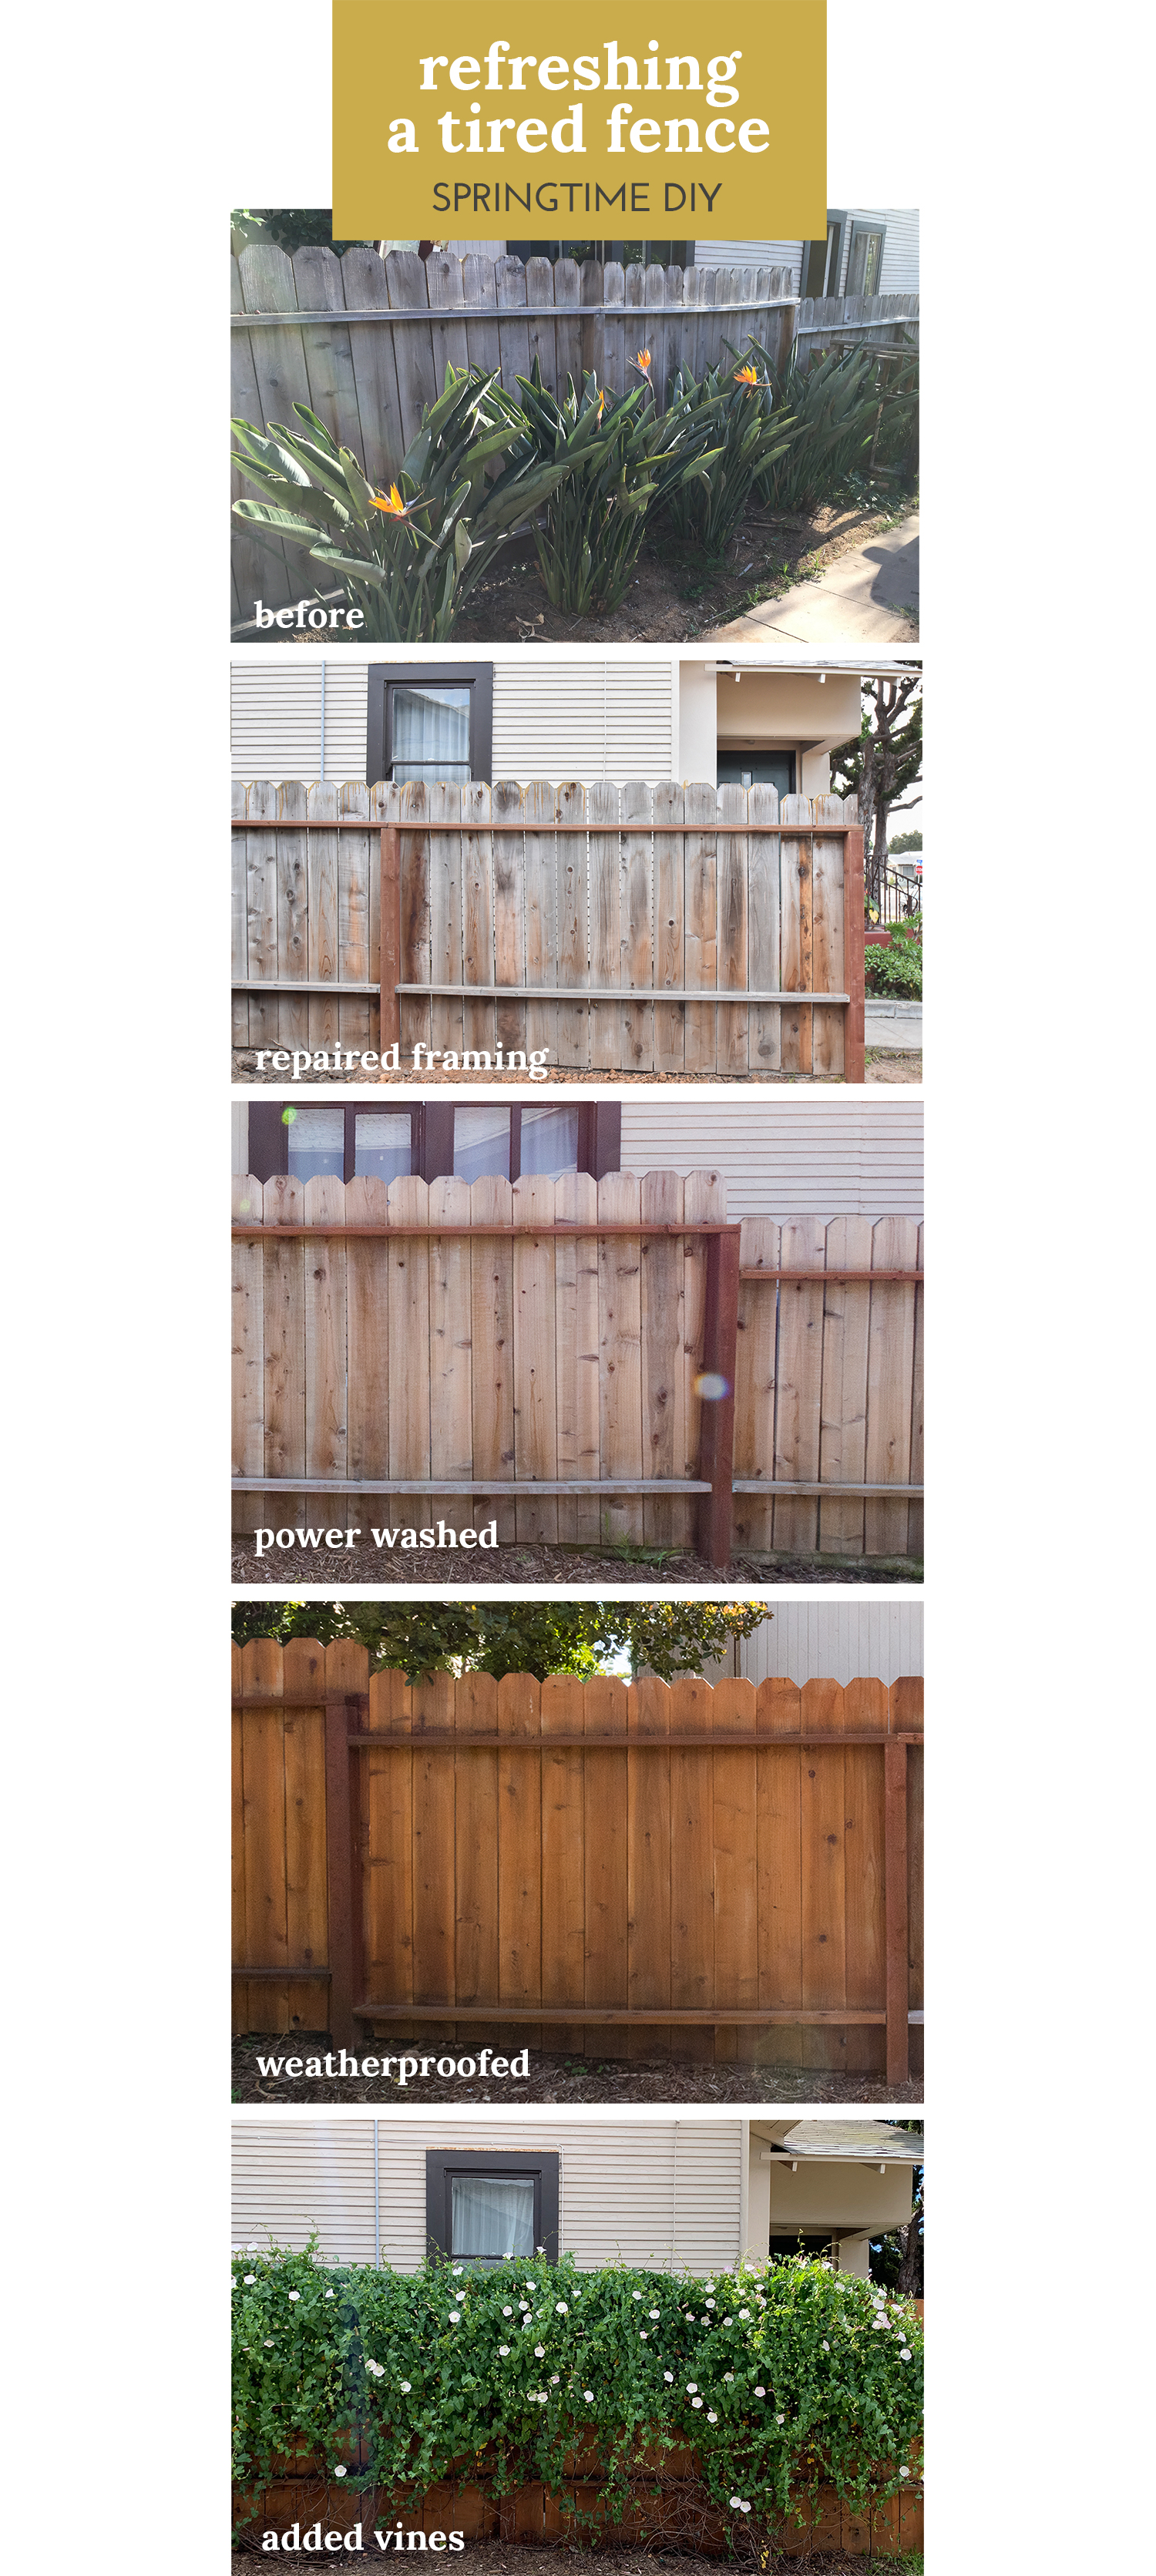 The Gold Hive How to Refresh a Fence - SPRINGTIME DIY REFRESHING A TIRED FENCE.jpg